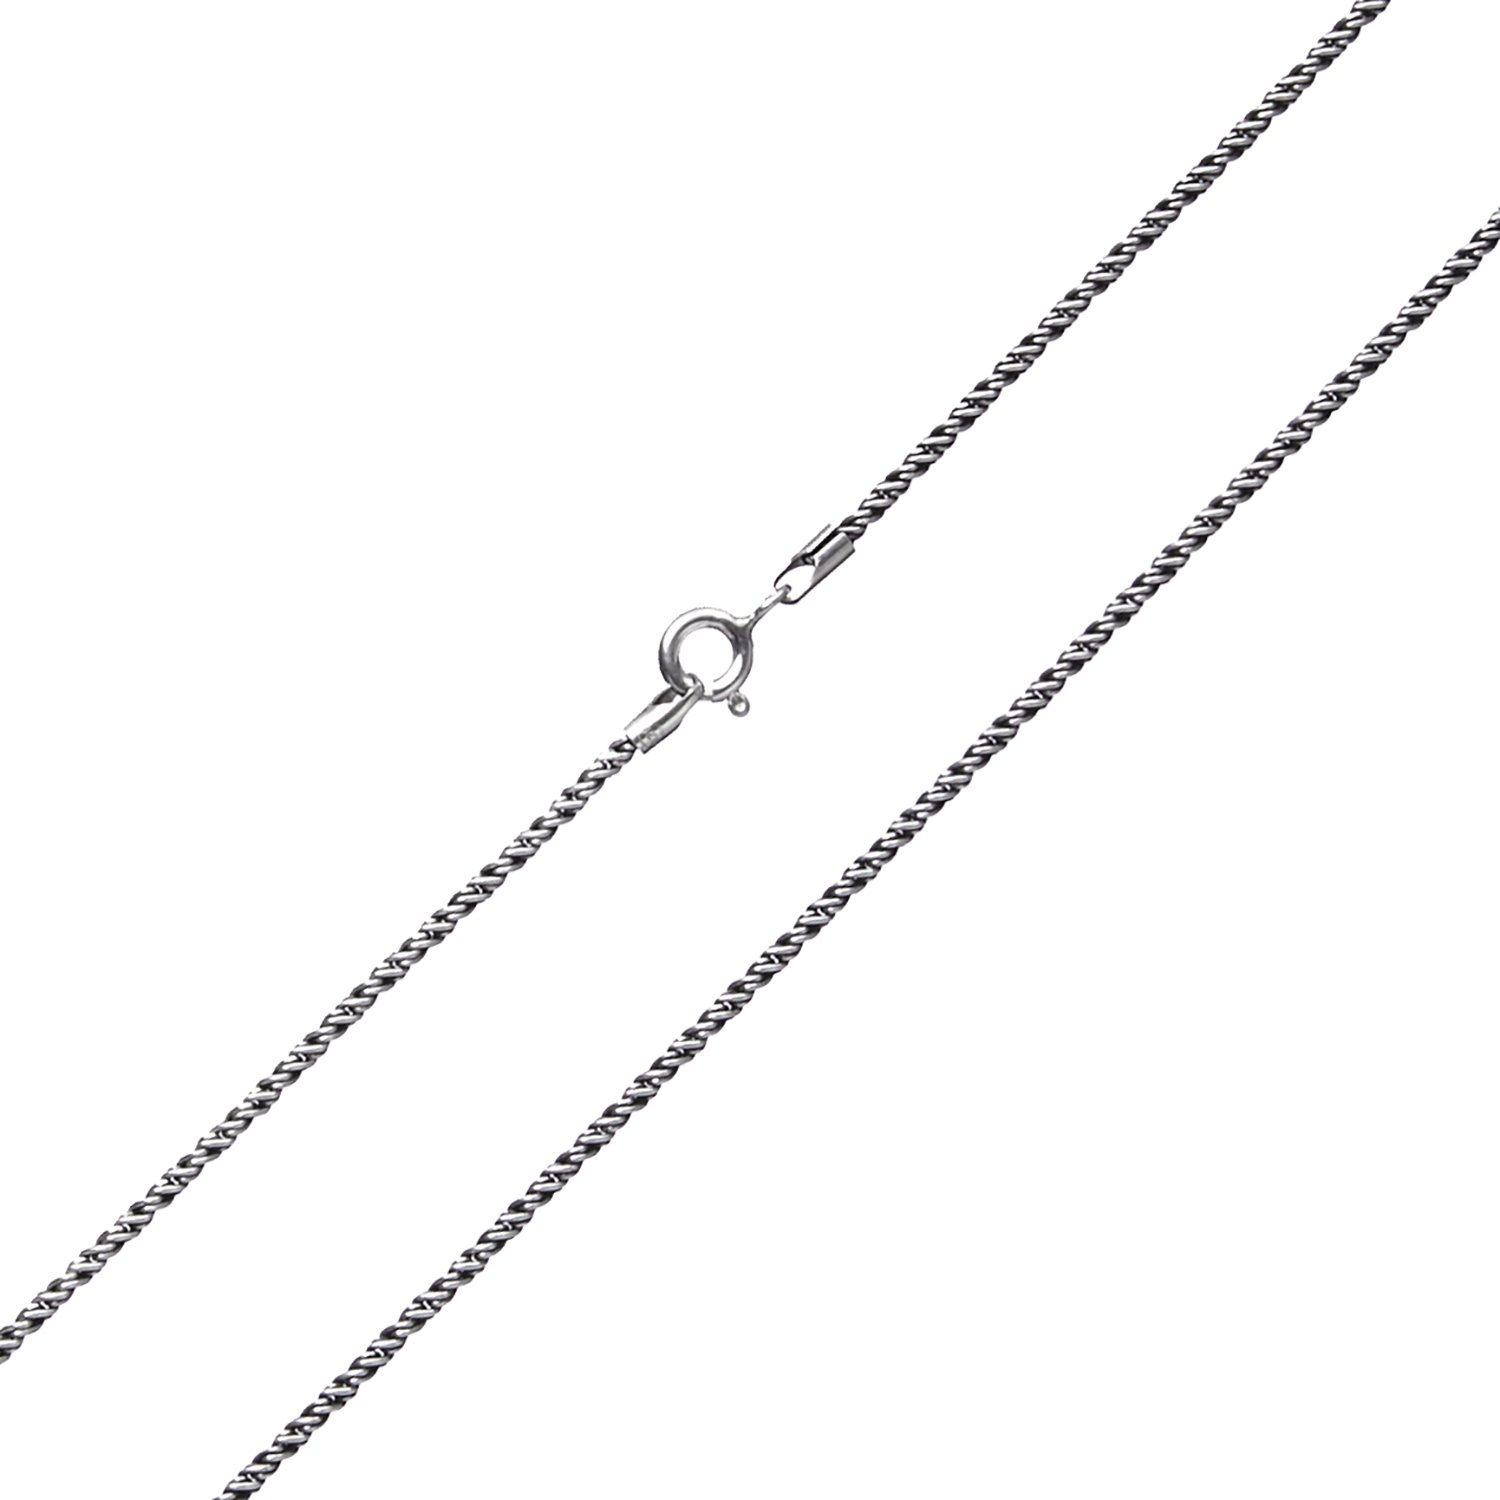 Wellme Sterling Silver Twisted Rope Vintage Chain Necklace, 18''-22'' (1mm Width 18 inches)